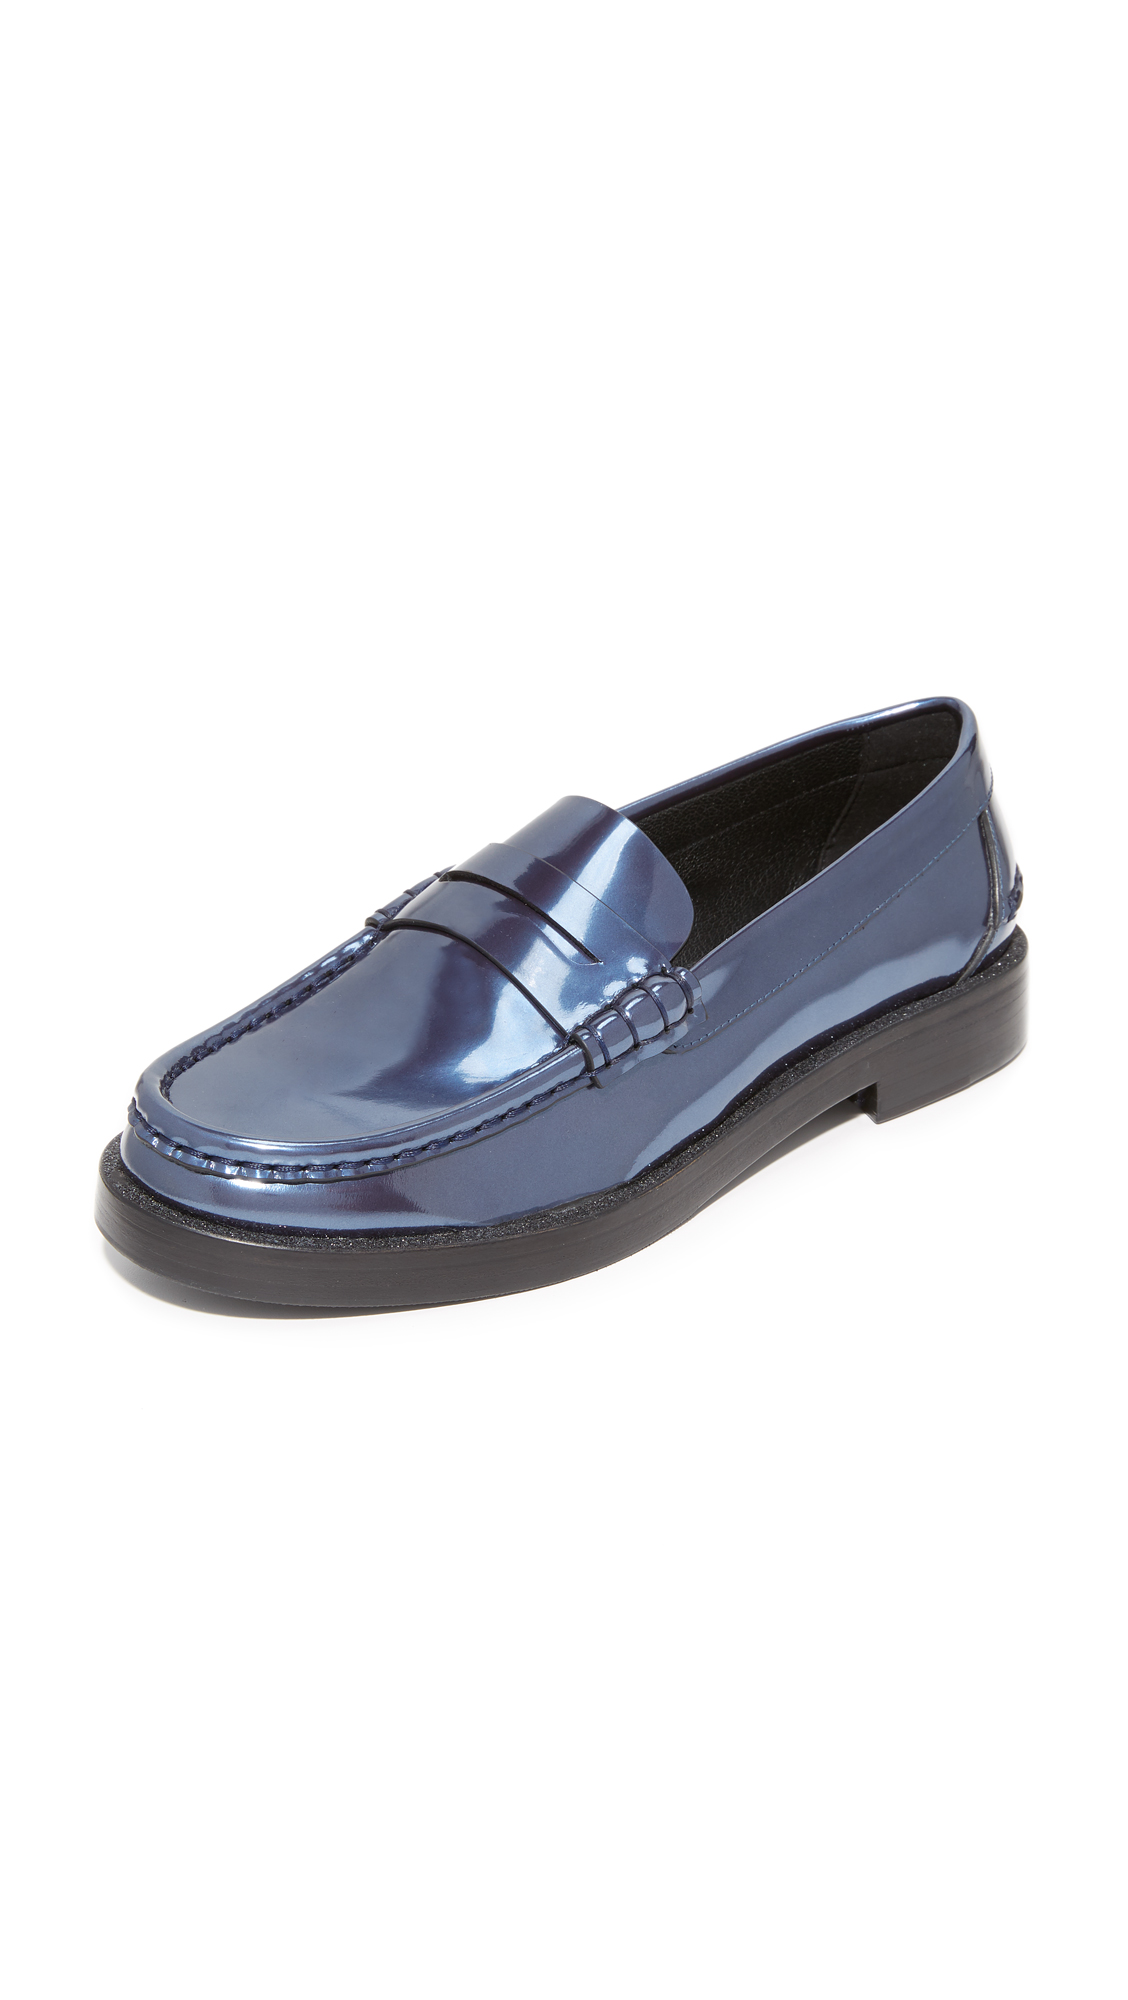 Pedro Garcia Queron Loafers - Astral Blue